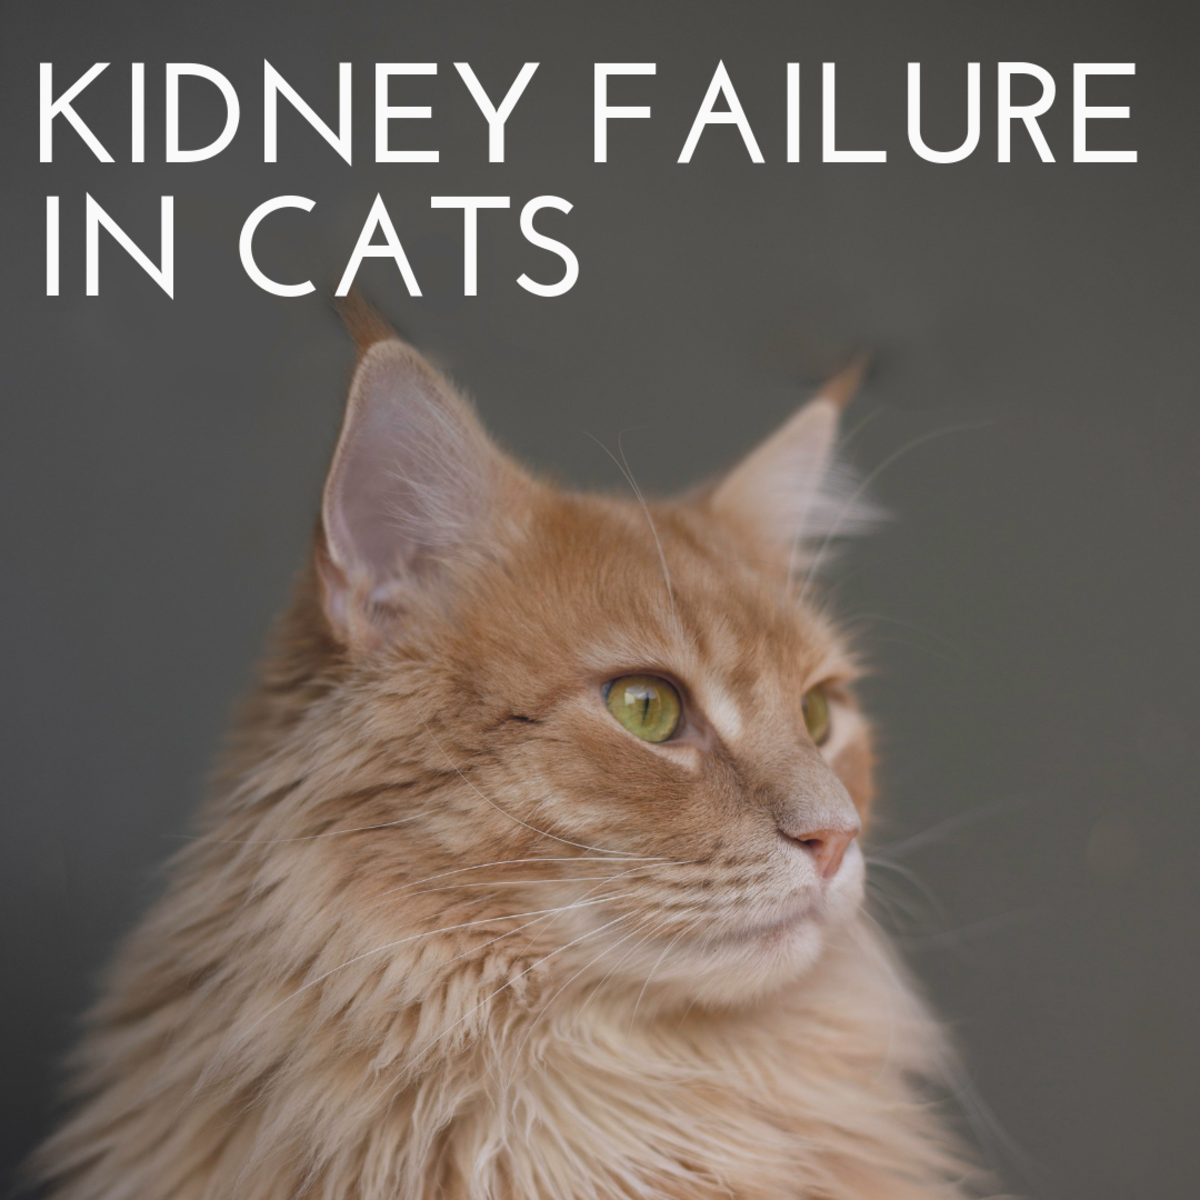 Taking Care of a Cat With Kidney Failure